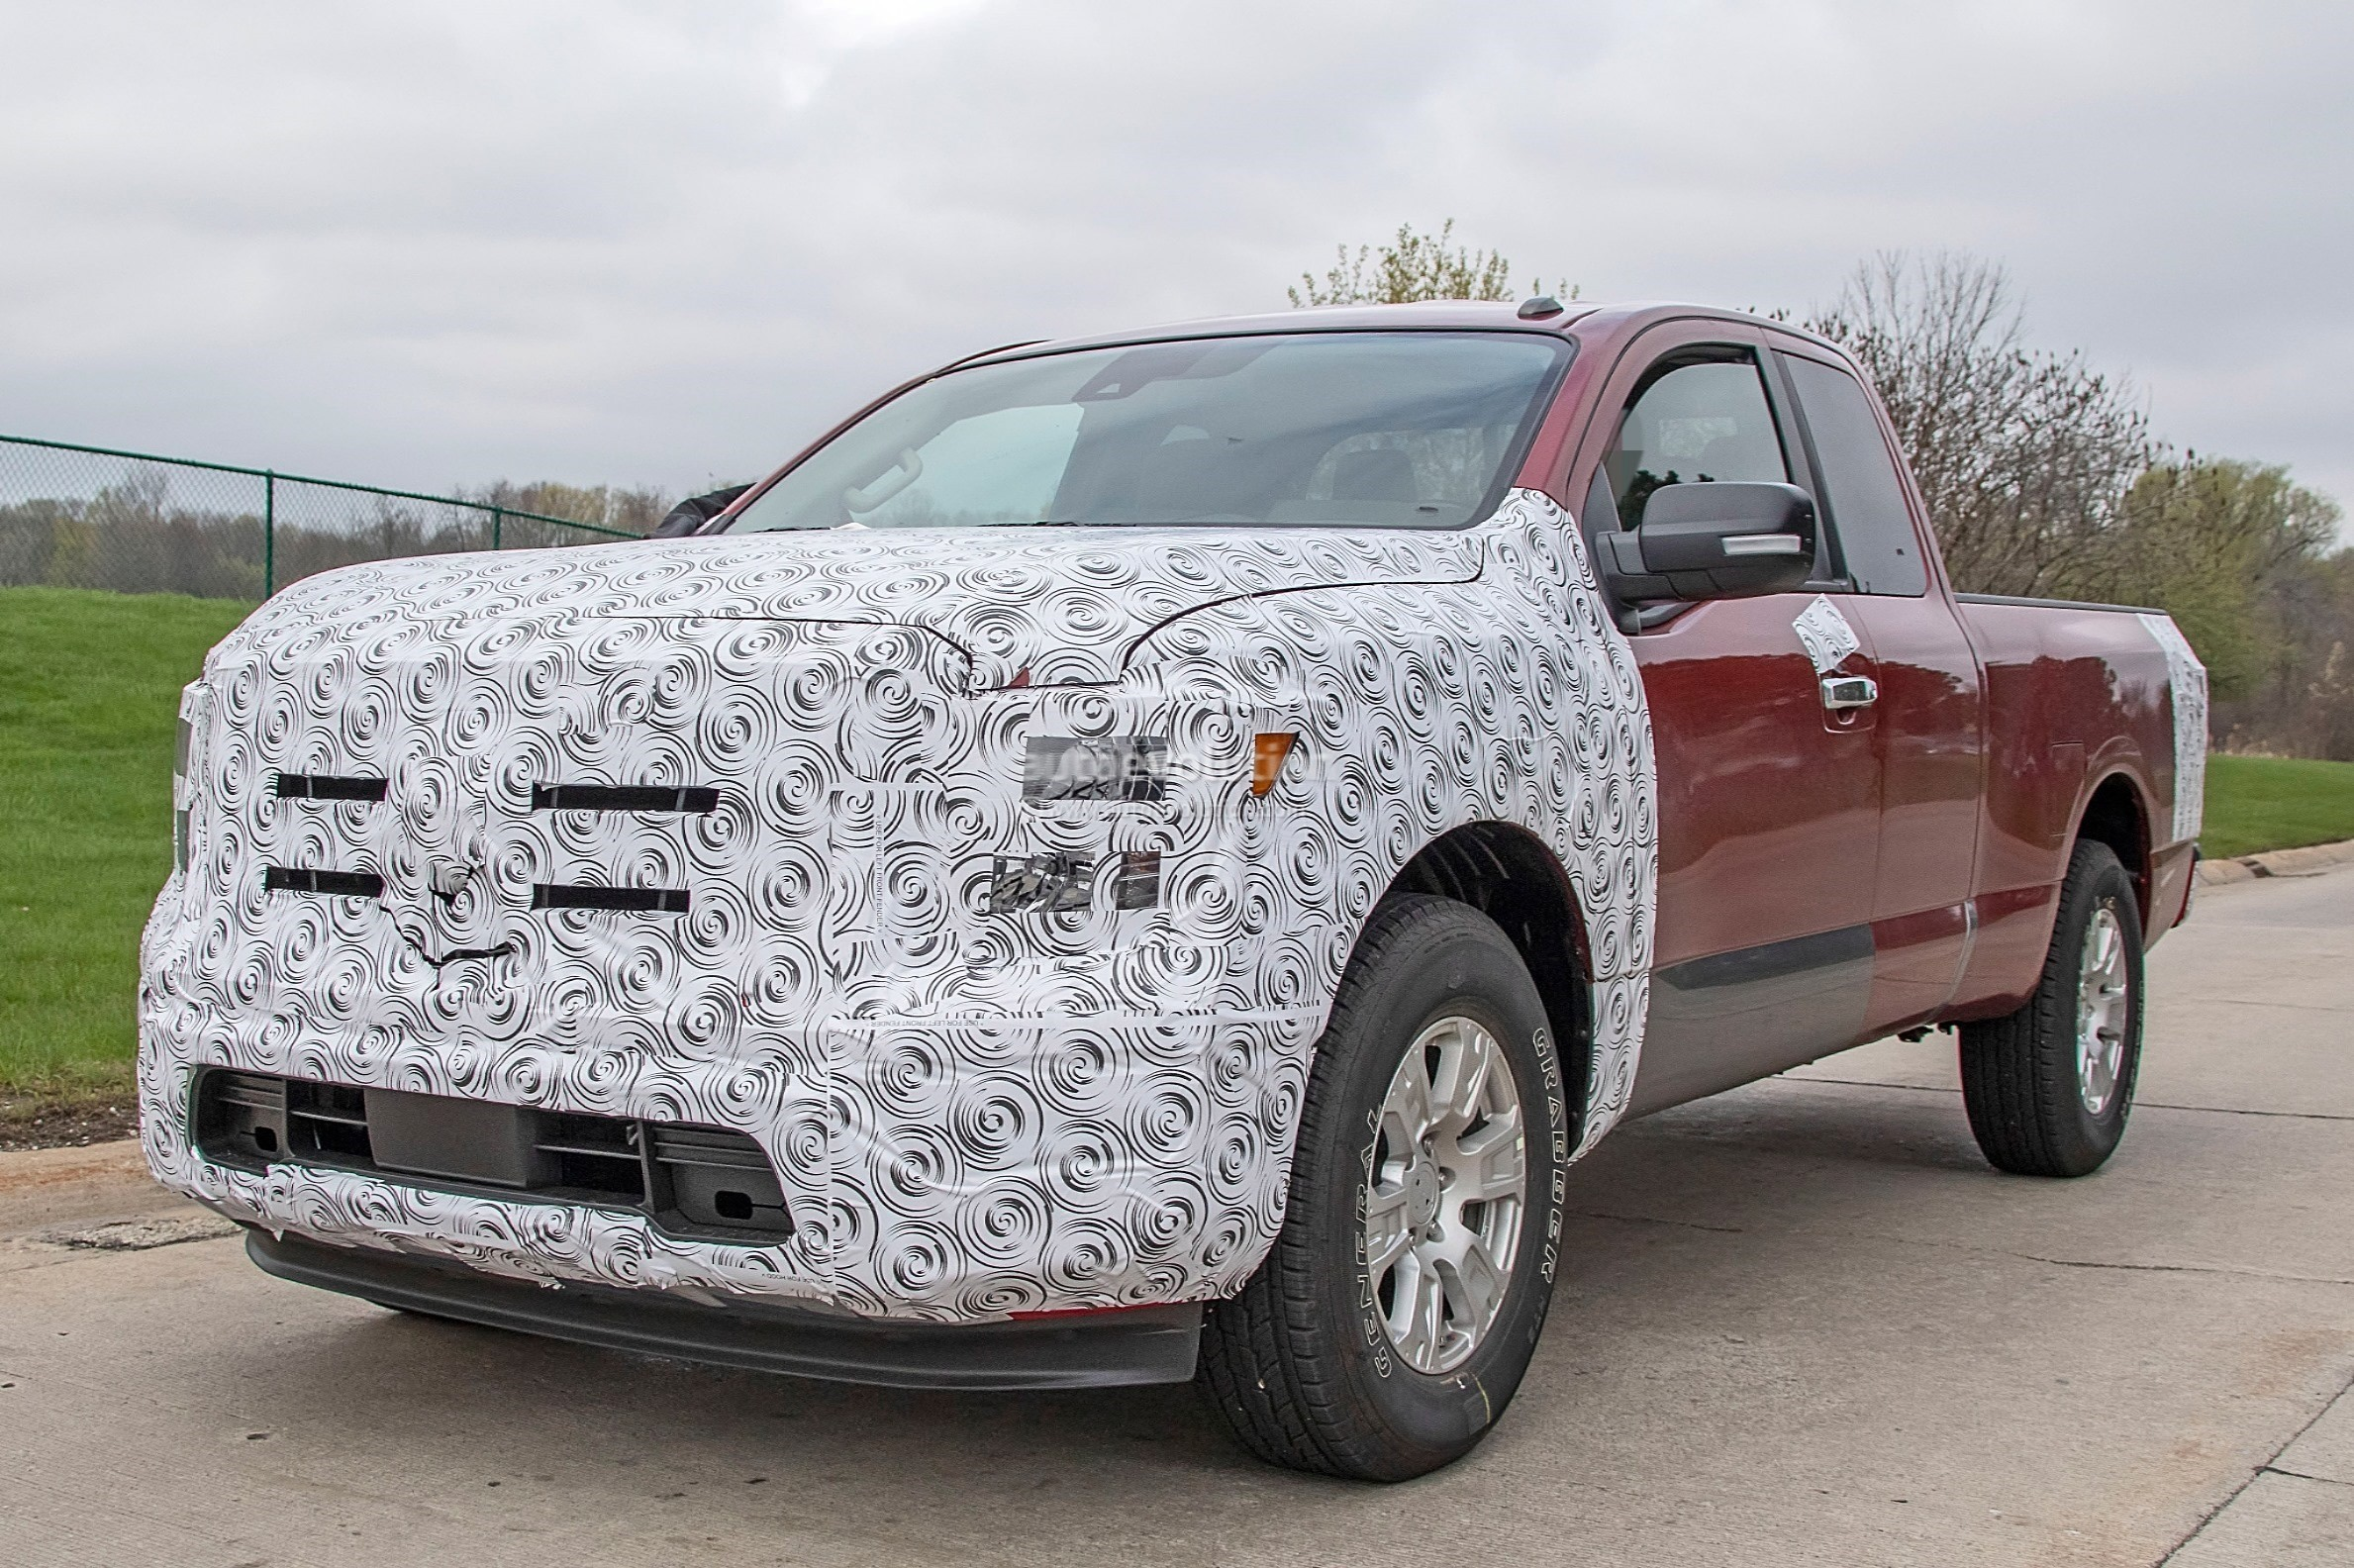 2020 Nissan Titan Spied Inside And Out - autoevolution